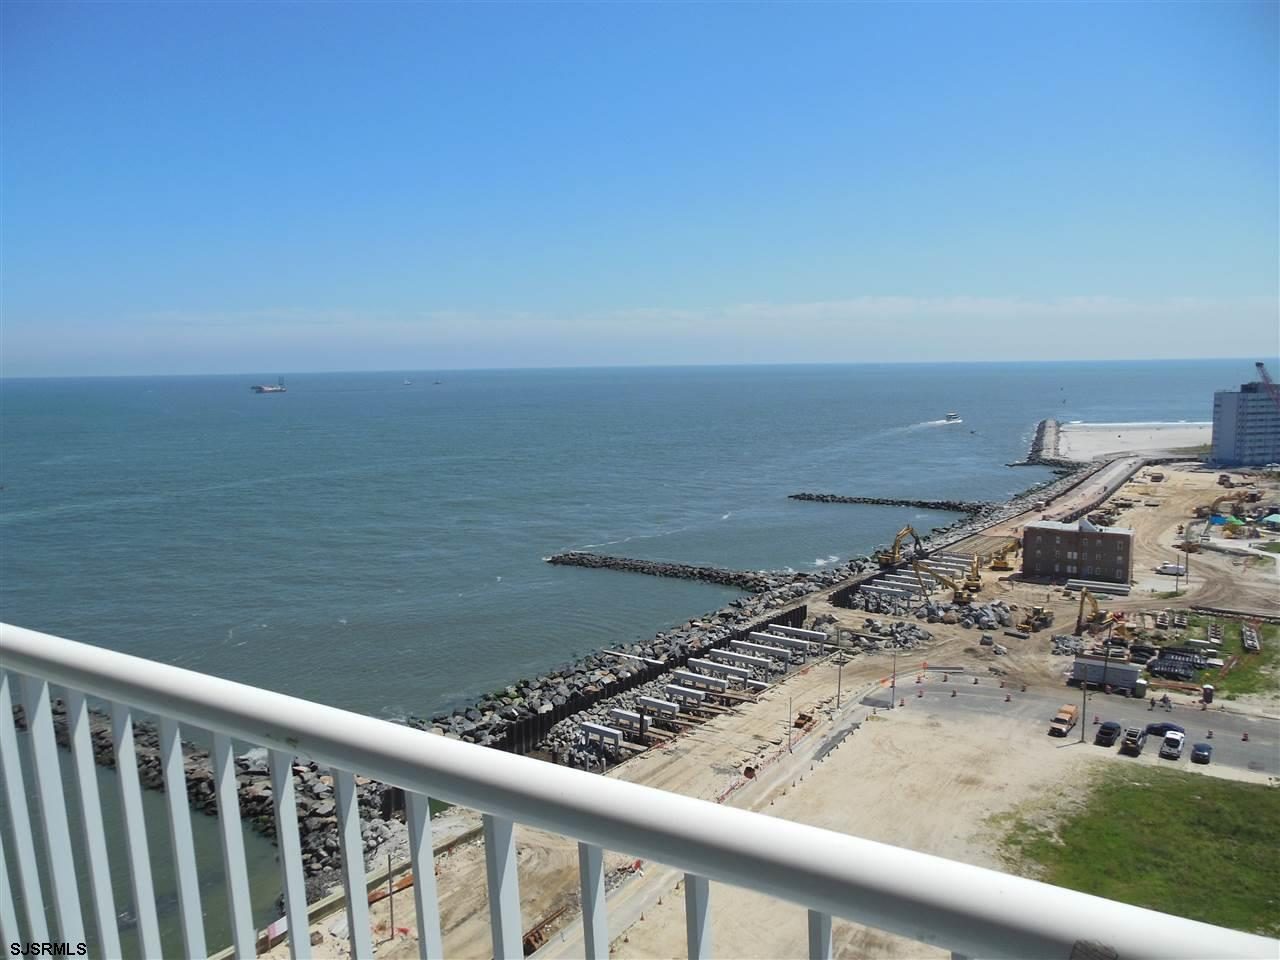 Incredible Ocean Views! Beautiful location , direct ocean front views from inside and from the spacious balcony of this 17th floor unit.  Property is in excellent condition , marble bathroom.. The condo fee basically covers everything . This is a rare opportunity to own in this building .